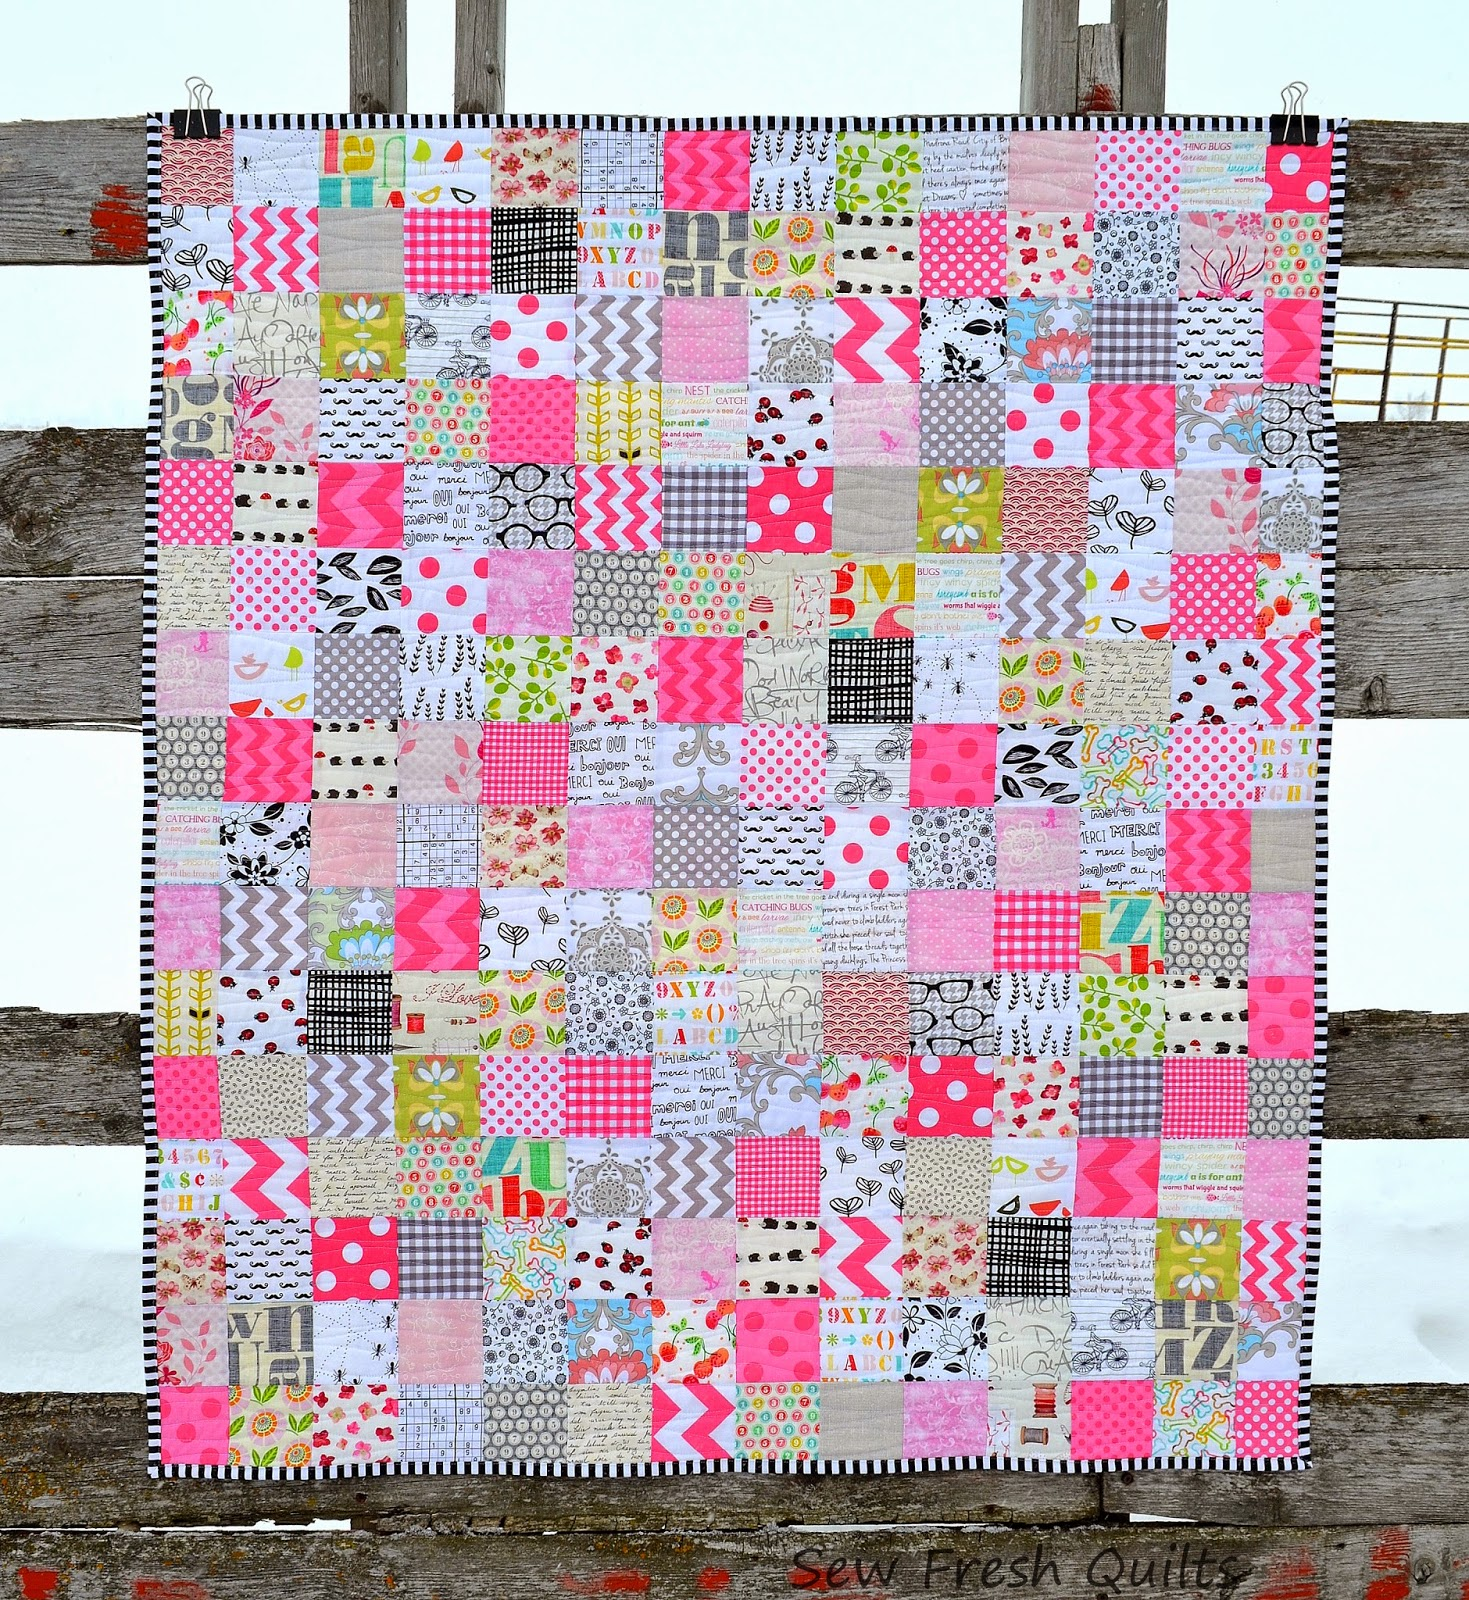 Sew Fresh Quilts: Pretty in Pink patchwork baby quilt : pink patchwork quilts - Adamdwight.com